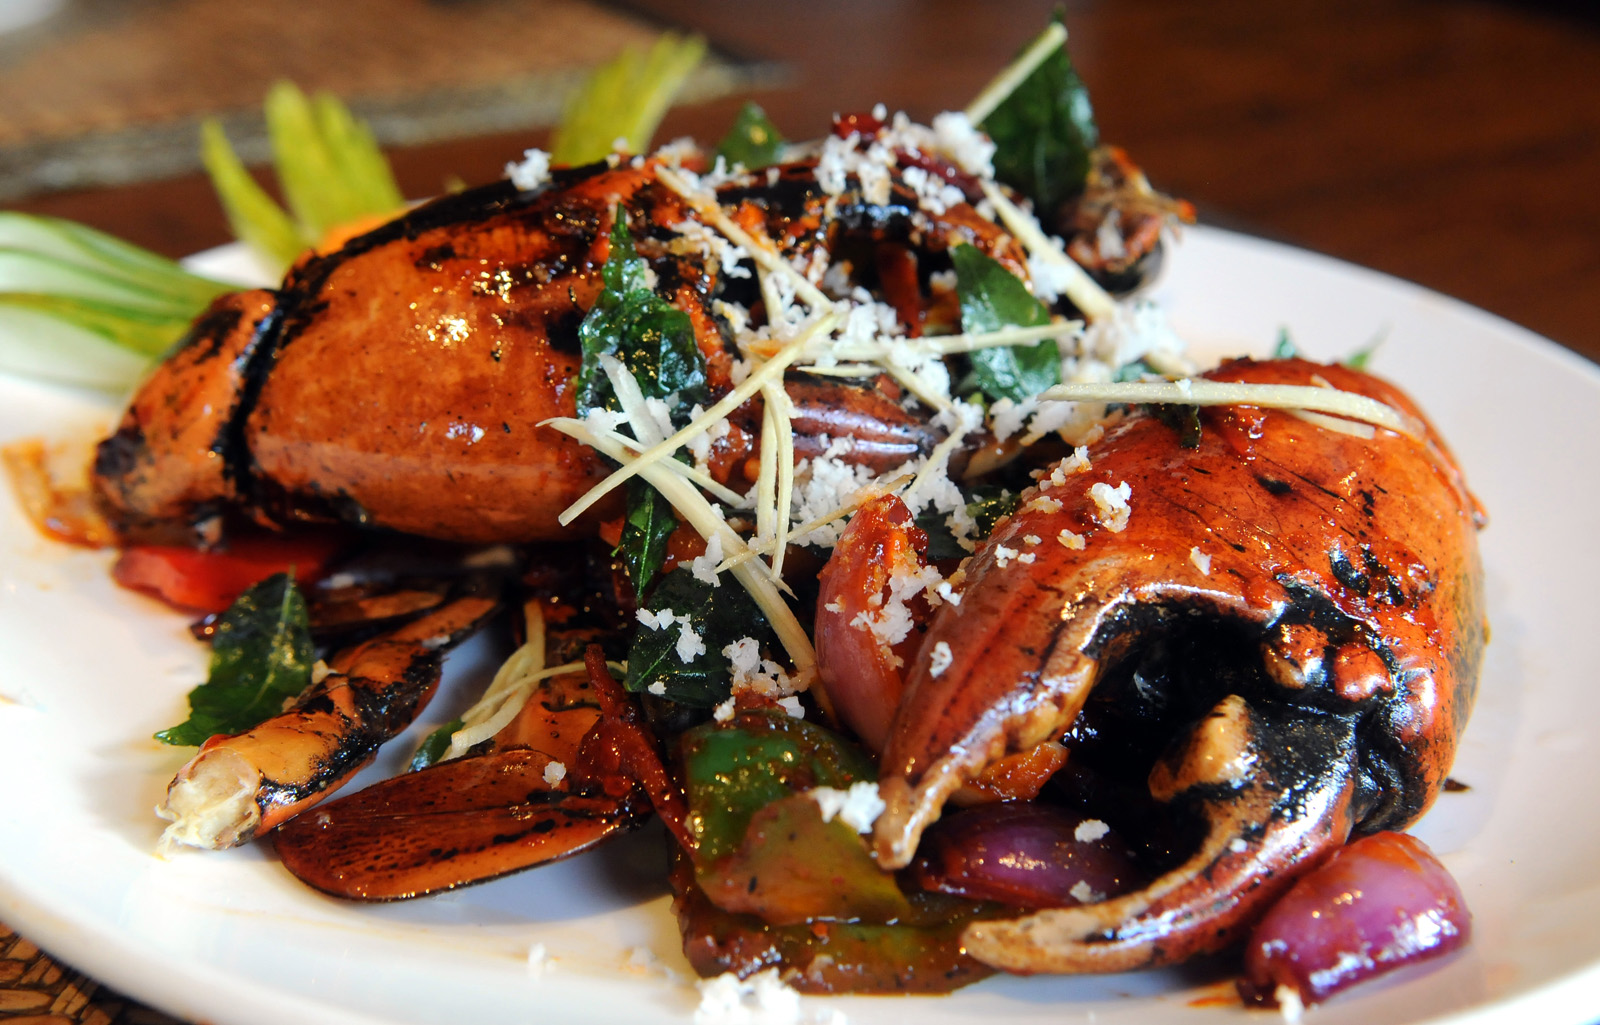 File:Kerala Chilli Crab.jpg - Wikimedia Commons